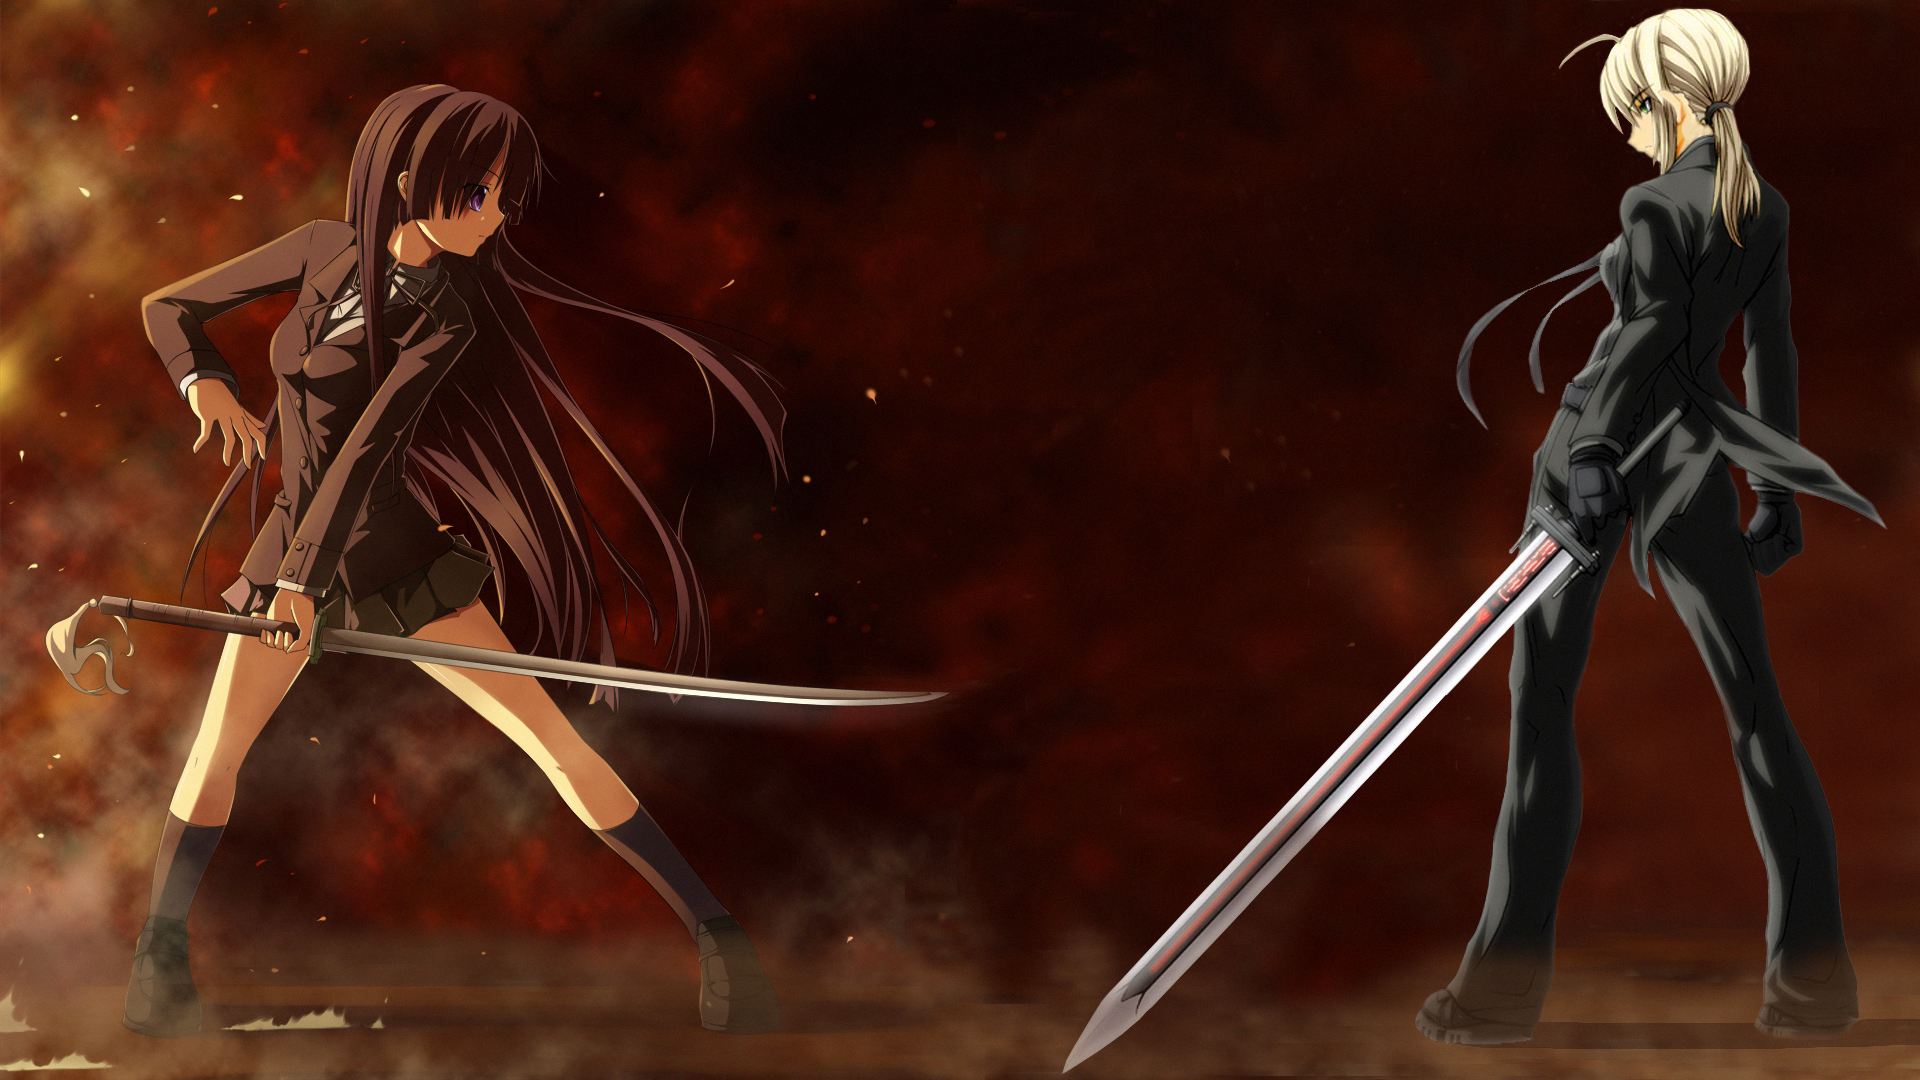 100 Wallpapers de anime HD 5297_1_other_anime_hd_wallpapers_anime_girls_fighting_sword